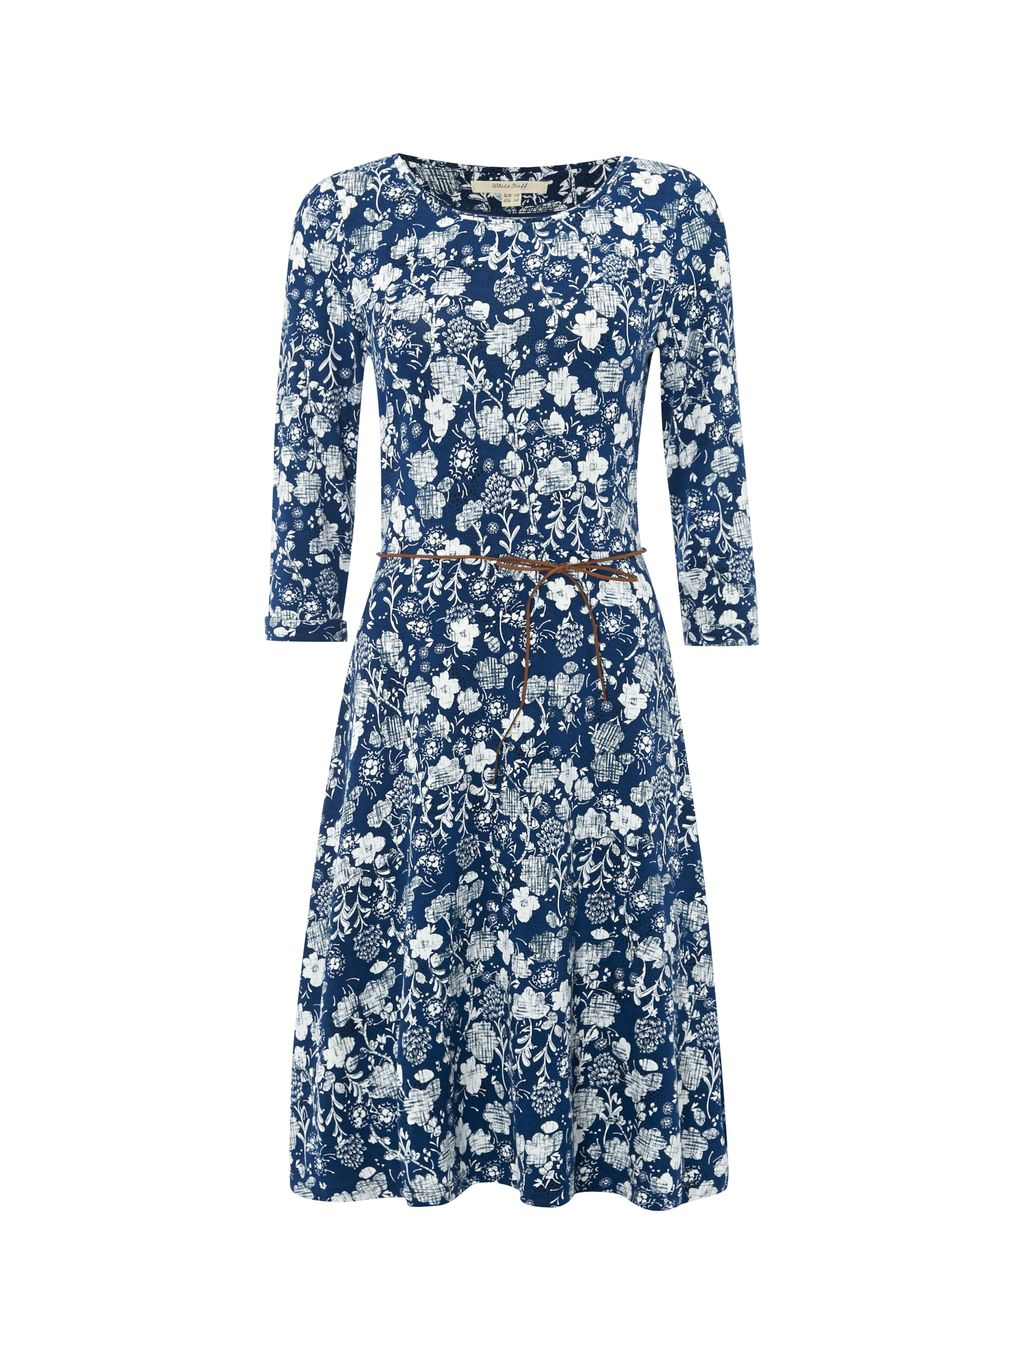 Fauna Jersey Dress, Blue - secondary colour: white; predominant colour: navy; occasions: casual; length: just above the knee; fit: fitted at waist & bust; style: fit & flare; fibres: cotton - stretch; neckline: crew; sleeve length: 3/4 length; sleeve style: standard; pattern type: fabric; pattern: patterned/print; texture group: jersey - stretchy/drapey; season: s/s 2016